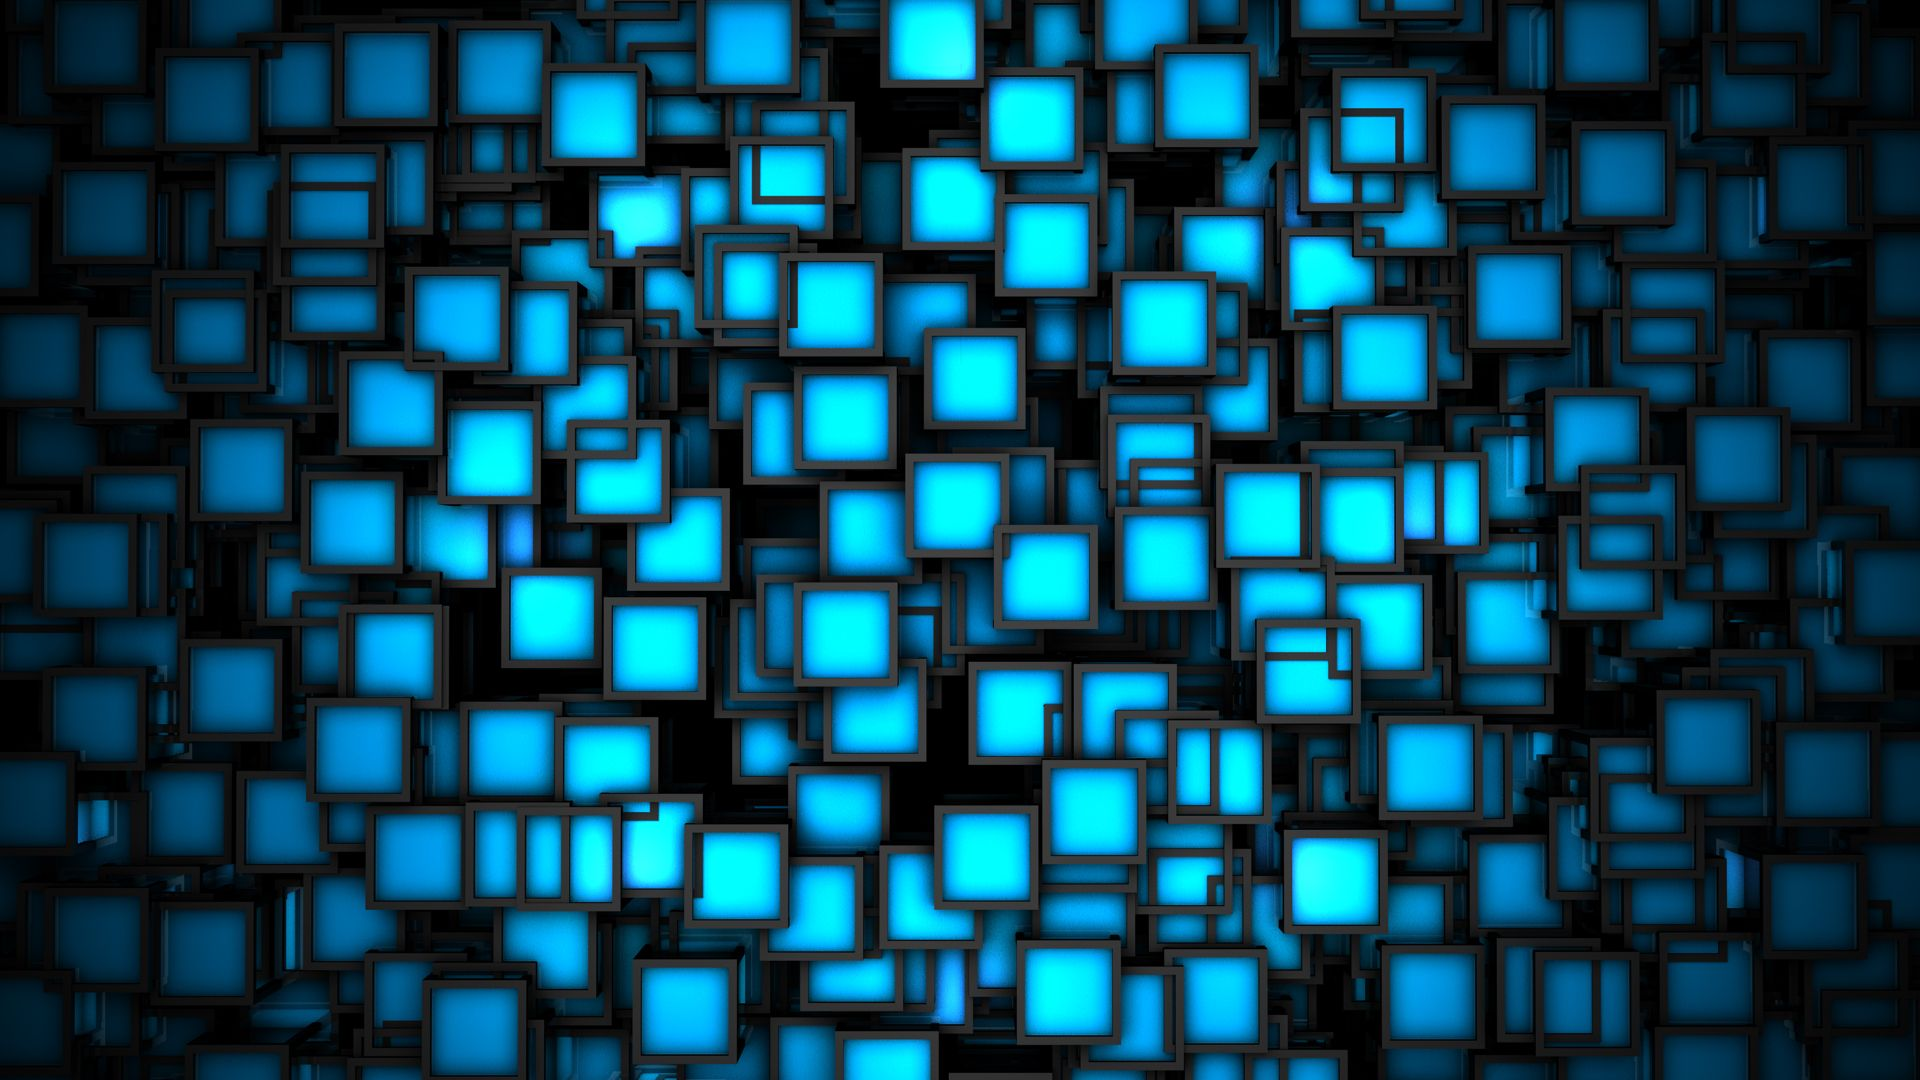 Fondos pantalla abstractos 3d en hd gratis para descargar for Imagenes para fondo de pantalla wallpapers